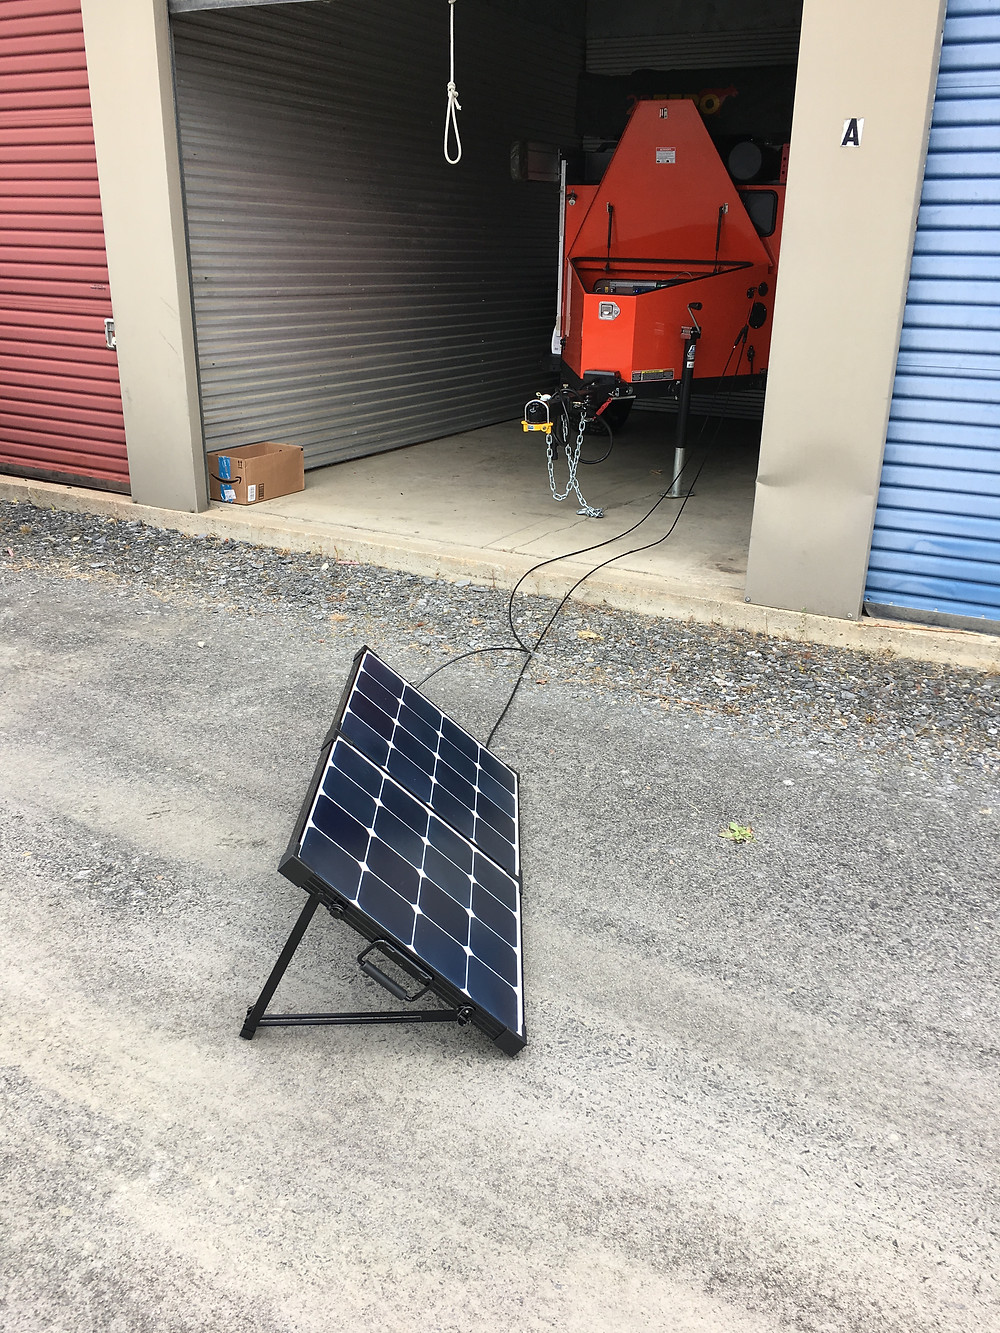 Our Turtleback trailer getting charged